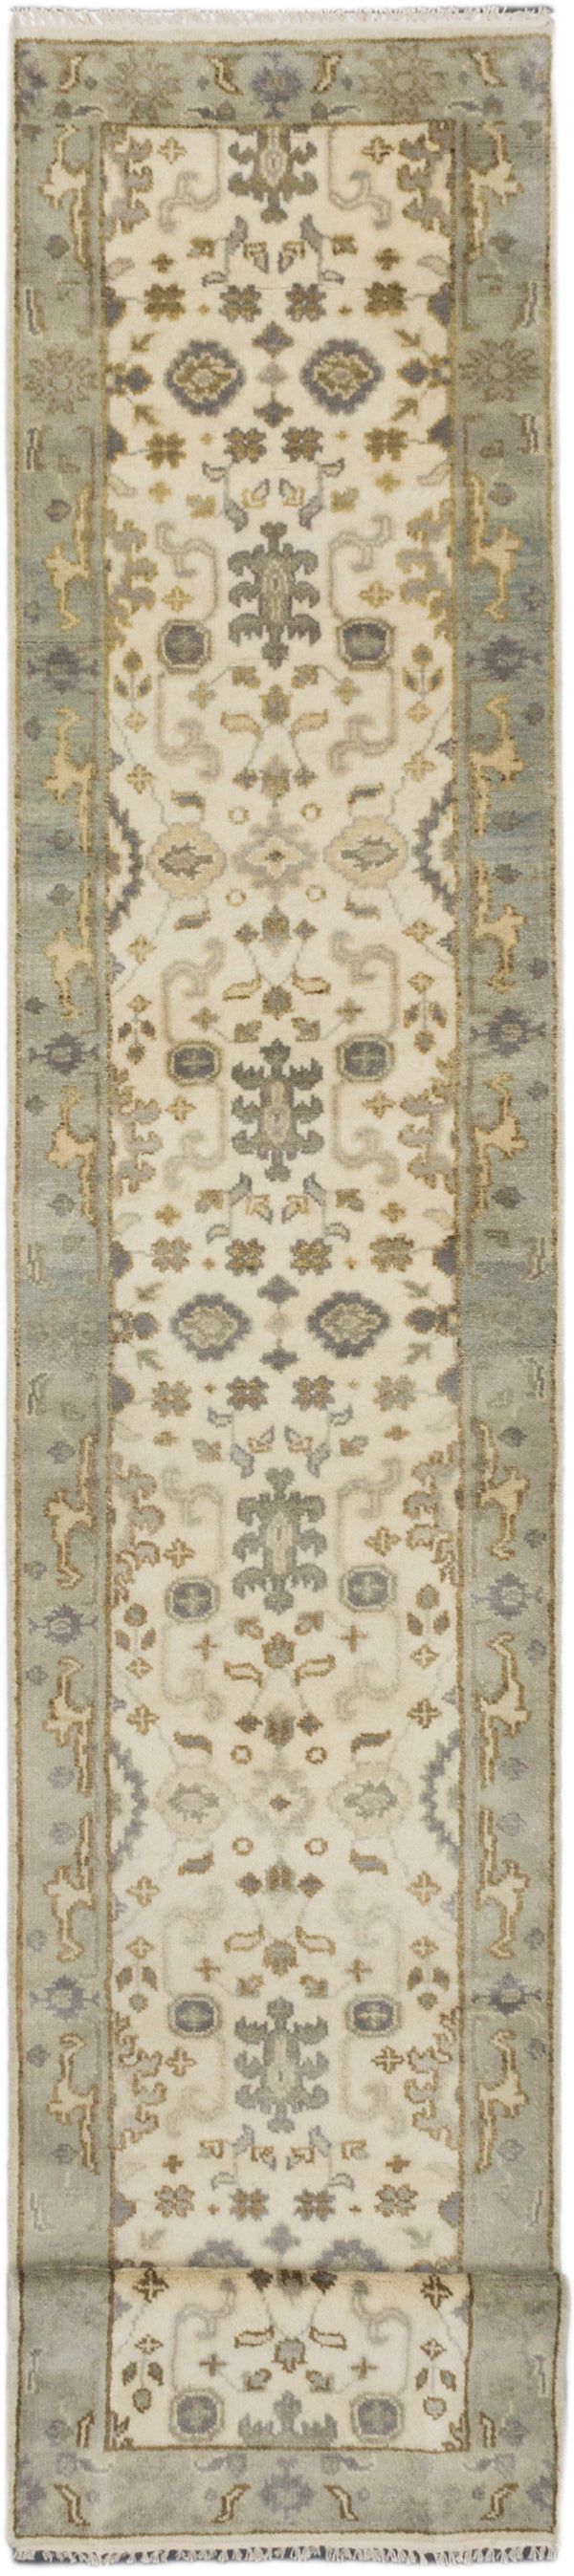 Hand-knotted Indian Floral  Traditional Royal-Ushak Runner rug  Cream 2.7 x 19.5